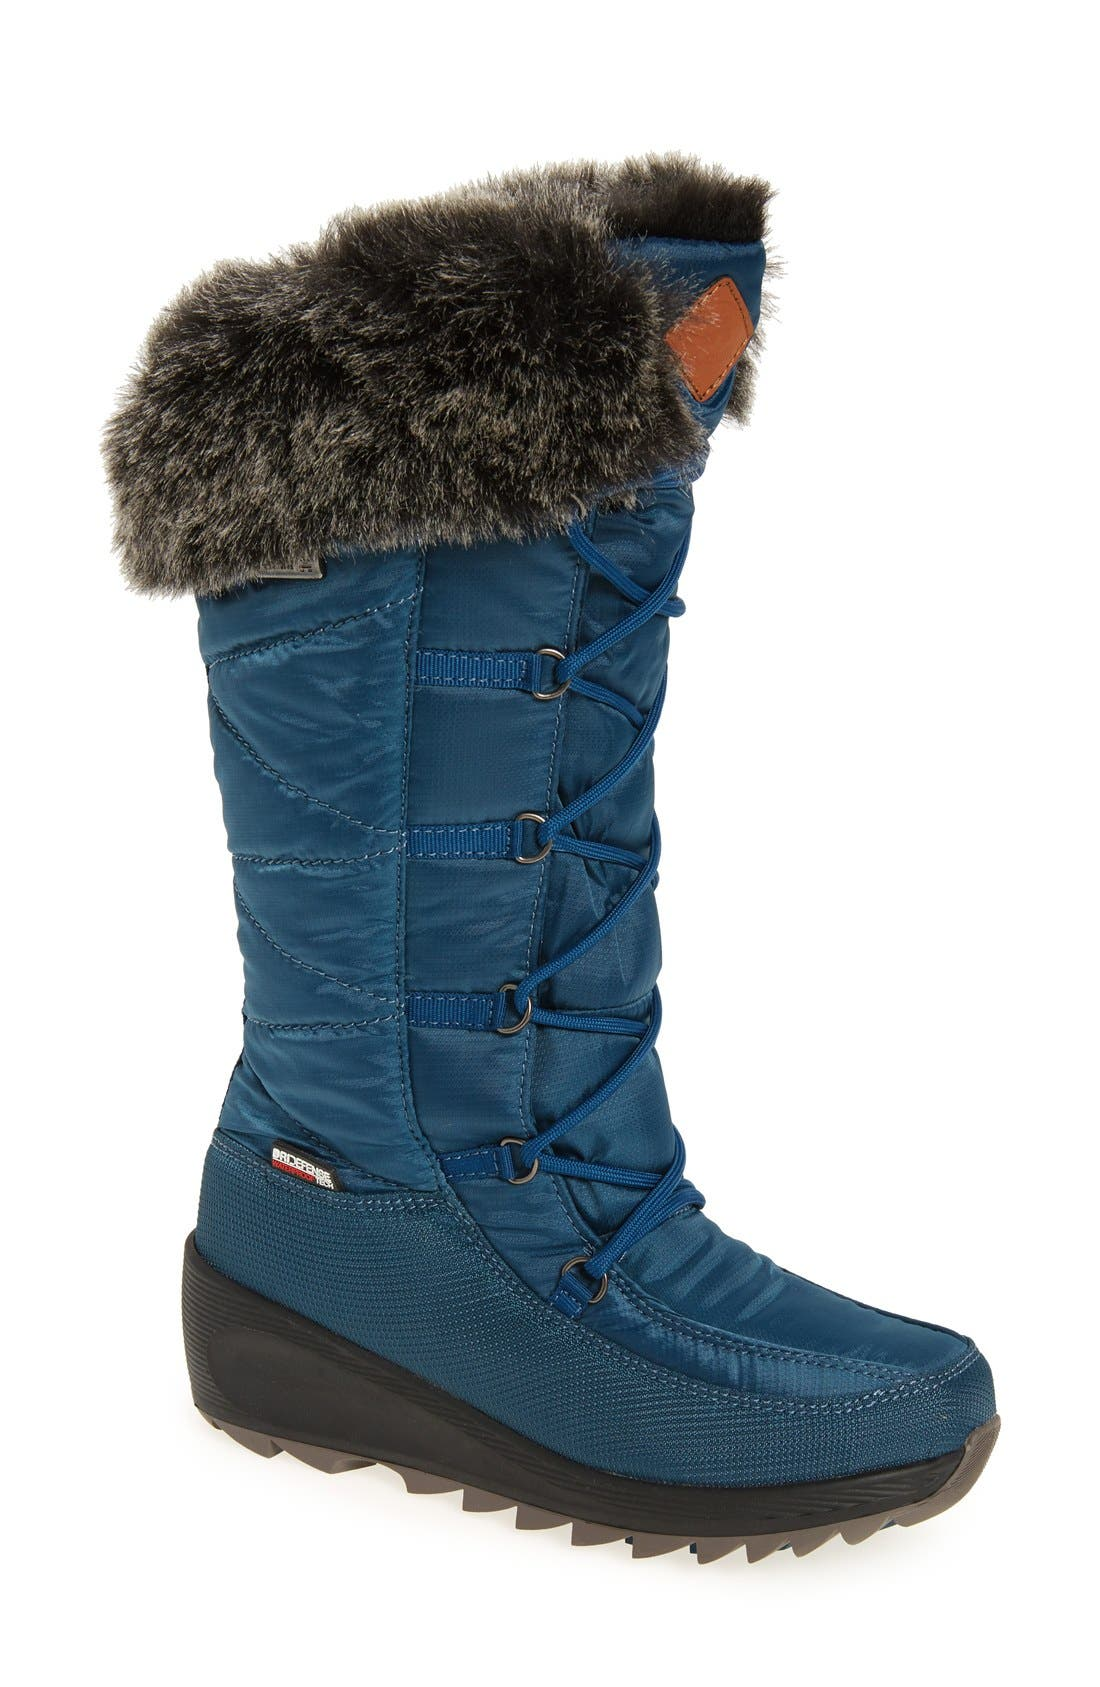 Alternate Image 1 Selected - Kamik Pinot Waterproof Boot with Faux Fur Cuff (Women)